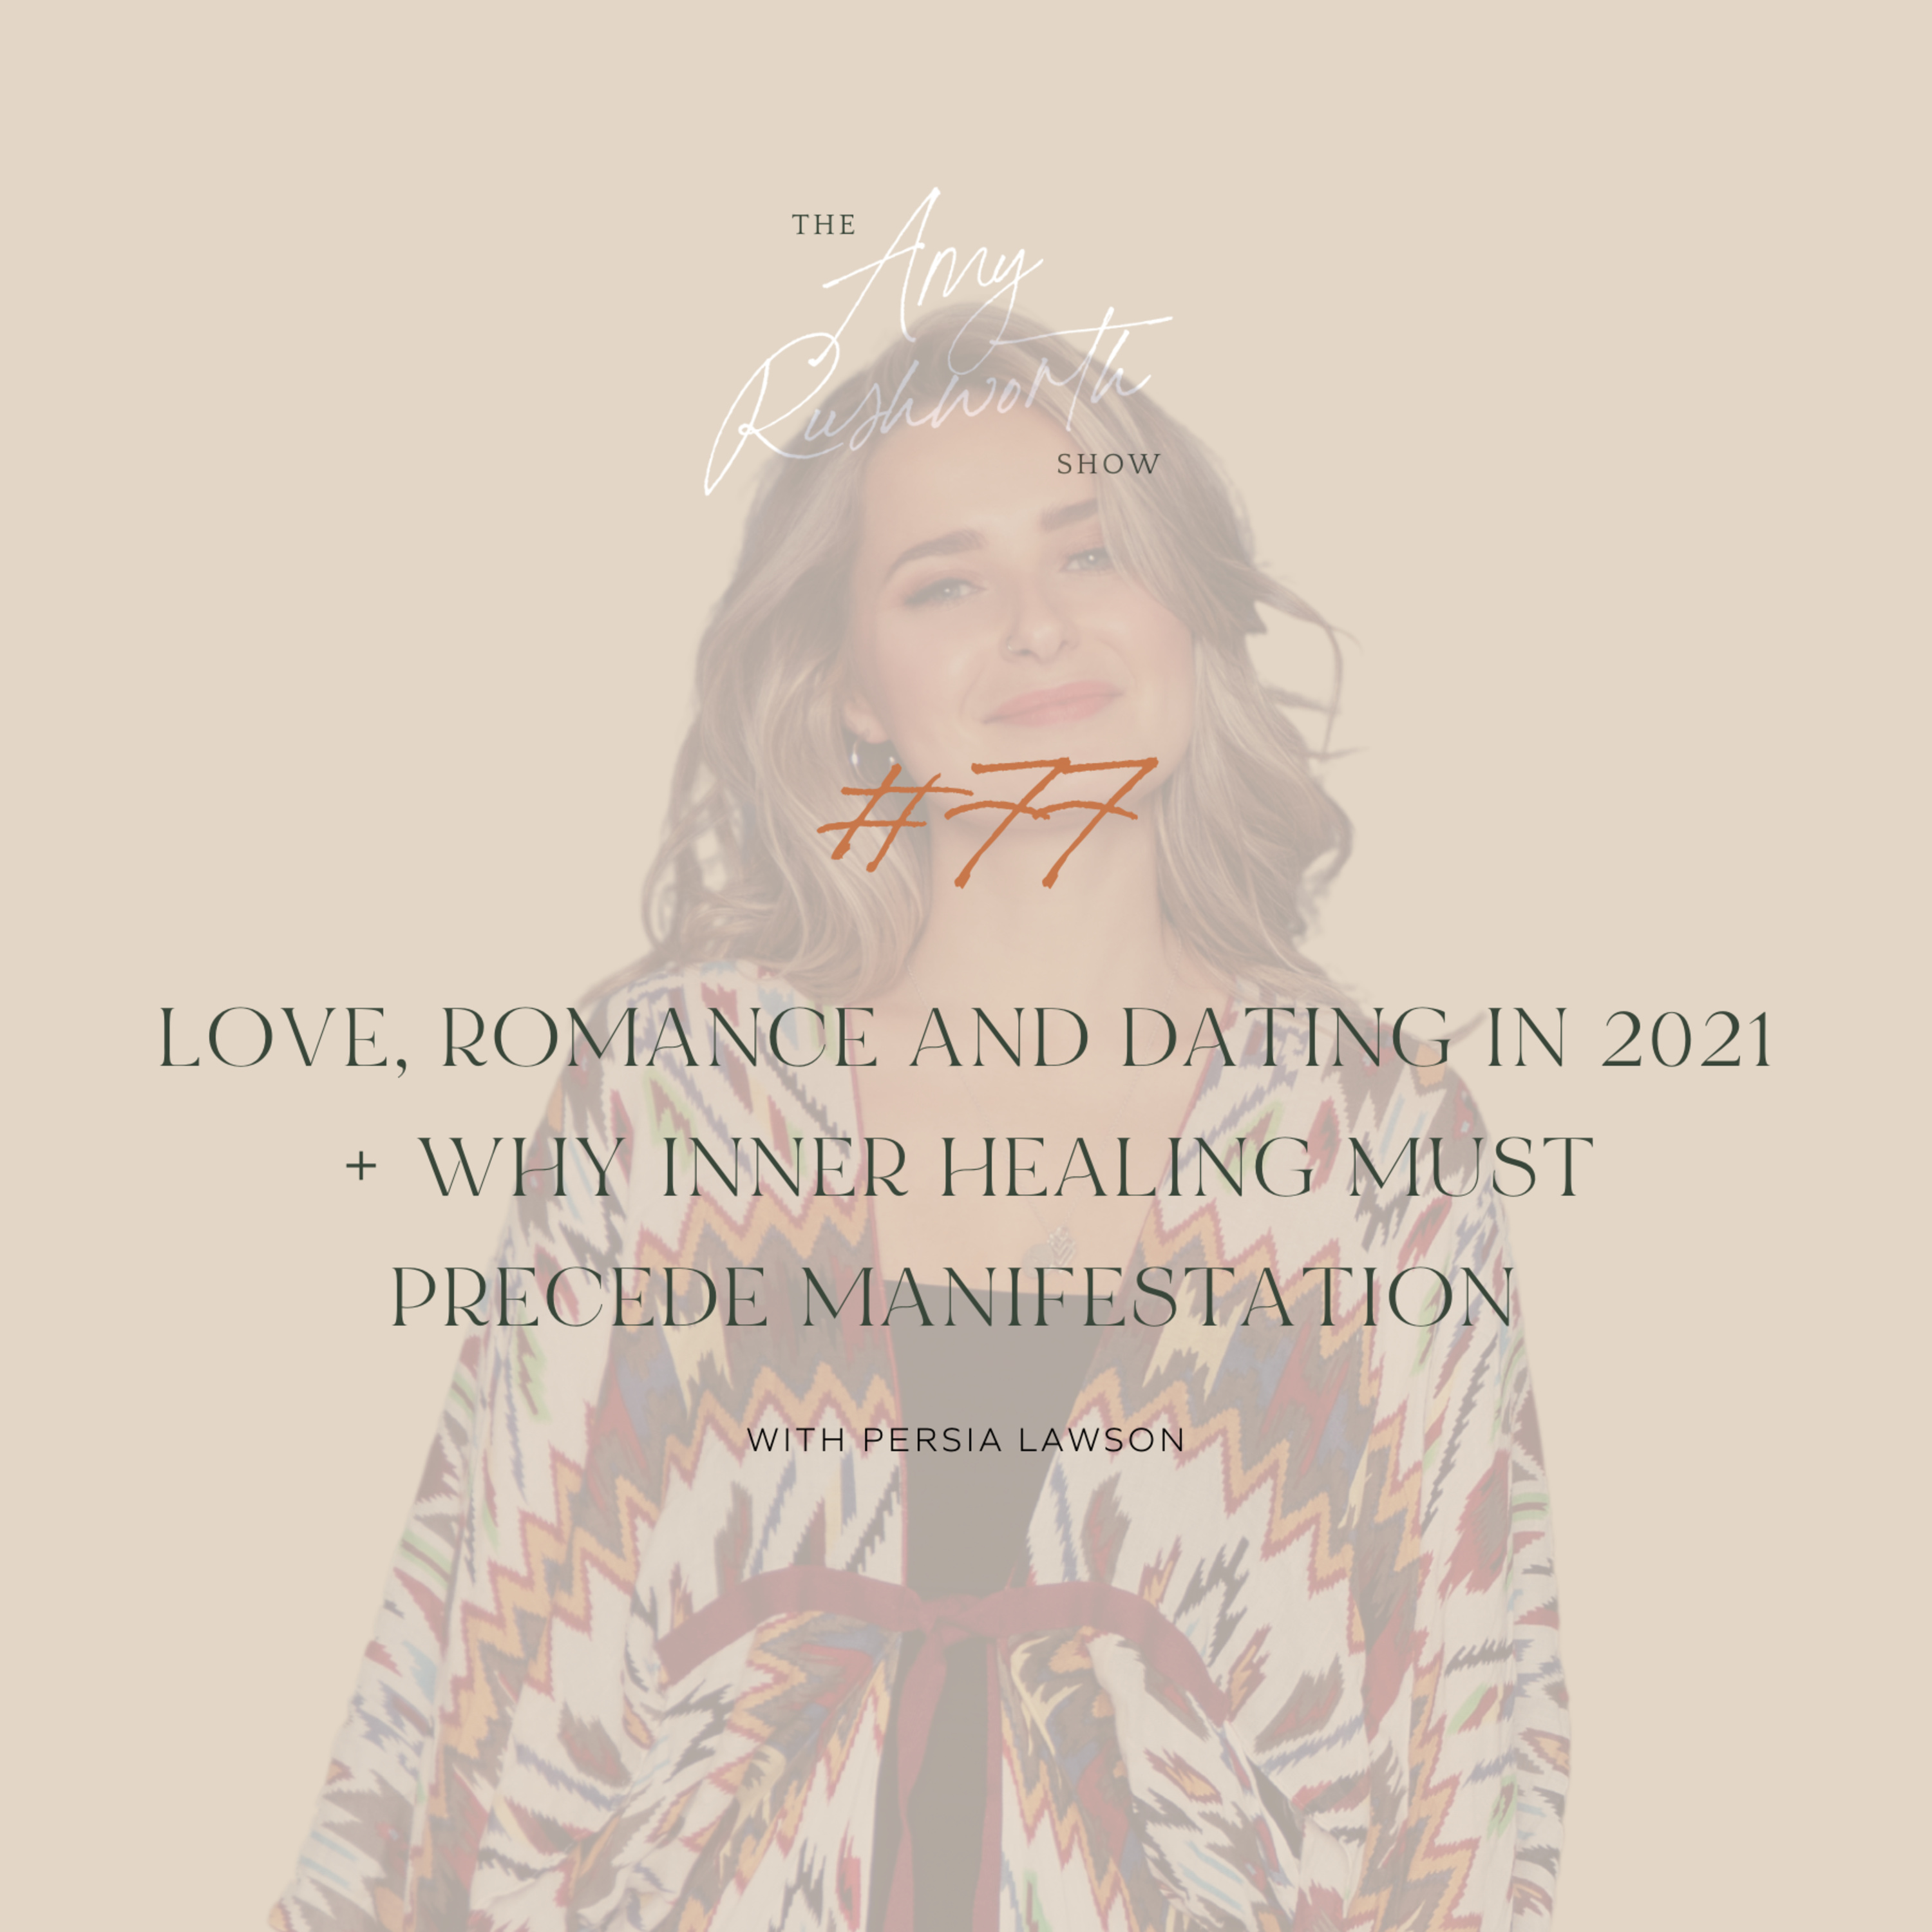 77 - Love, Romance And Dating In 2021 + Why Inner Healing Must Precede Manifestation with Persia Lawson